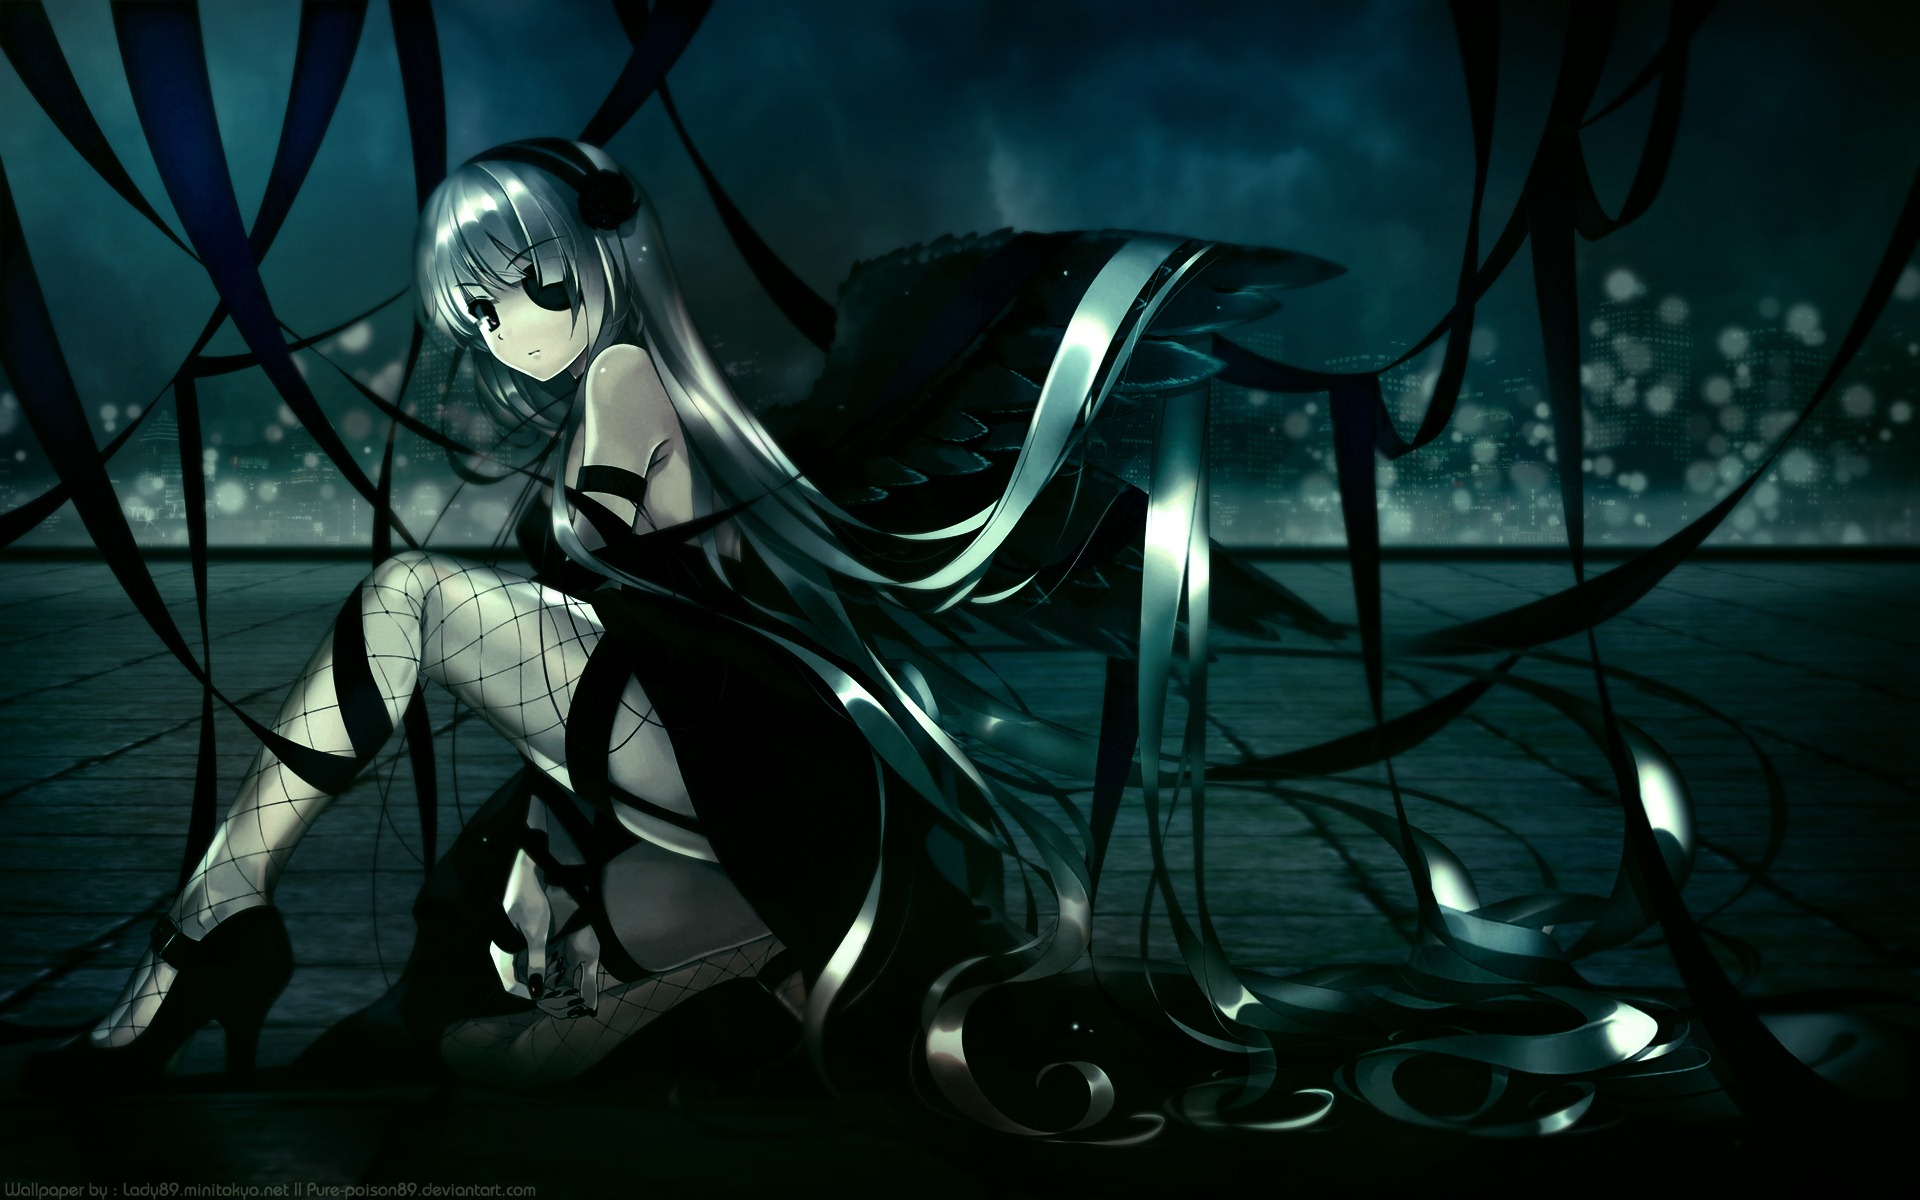 dark anime wallpaper hd wallpapersafari